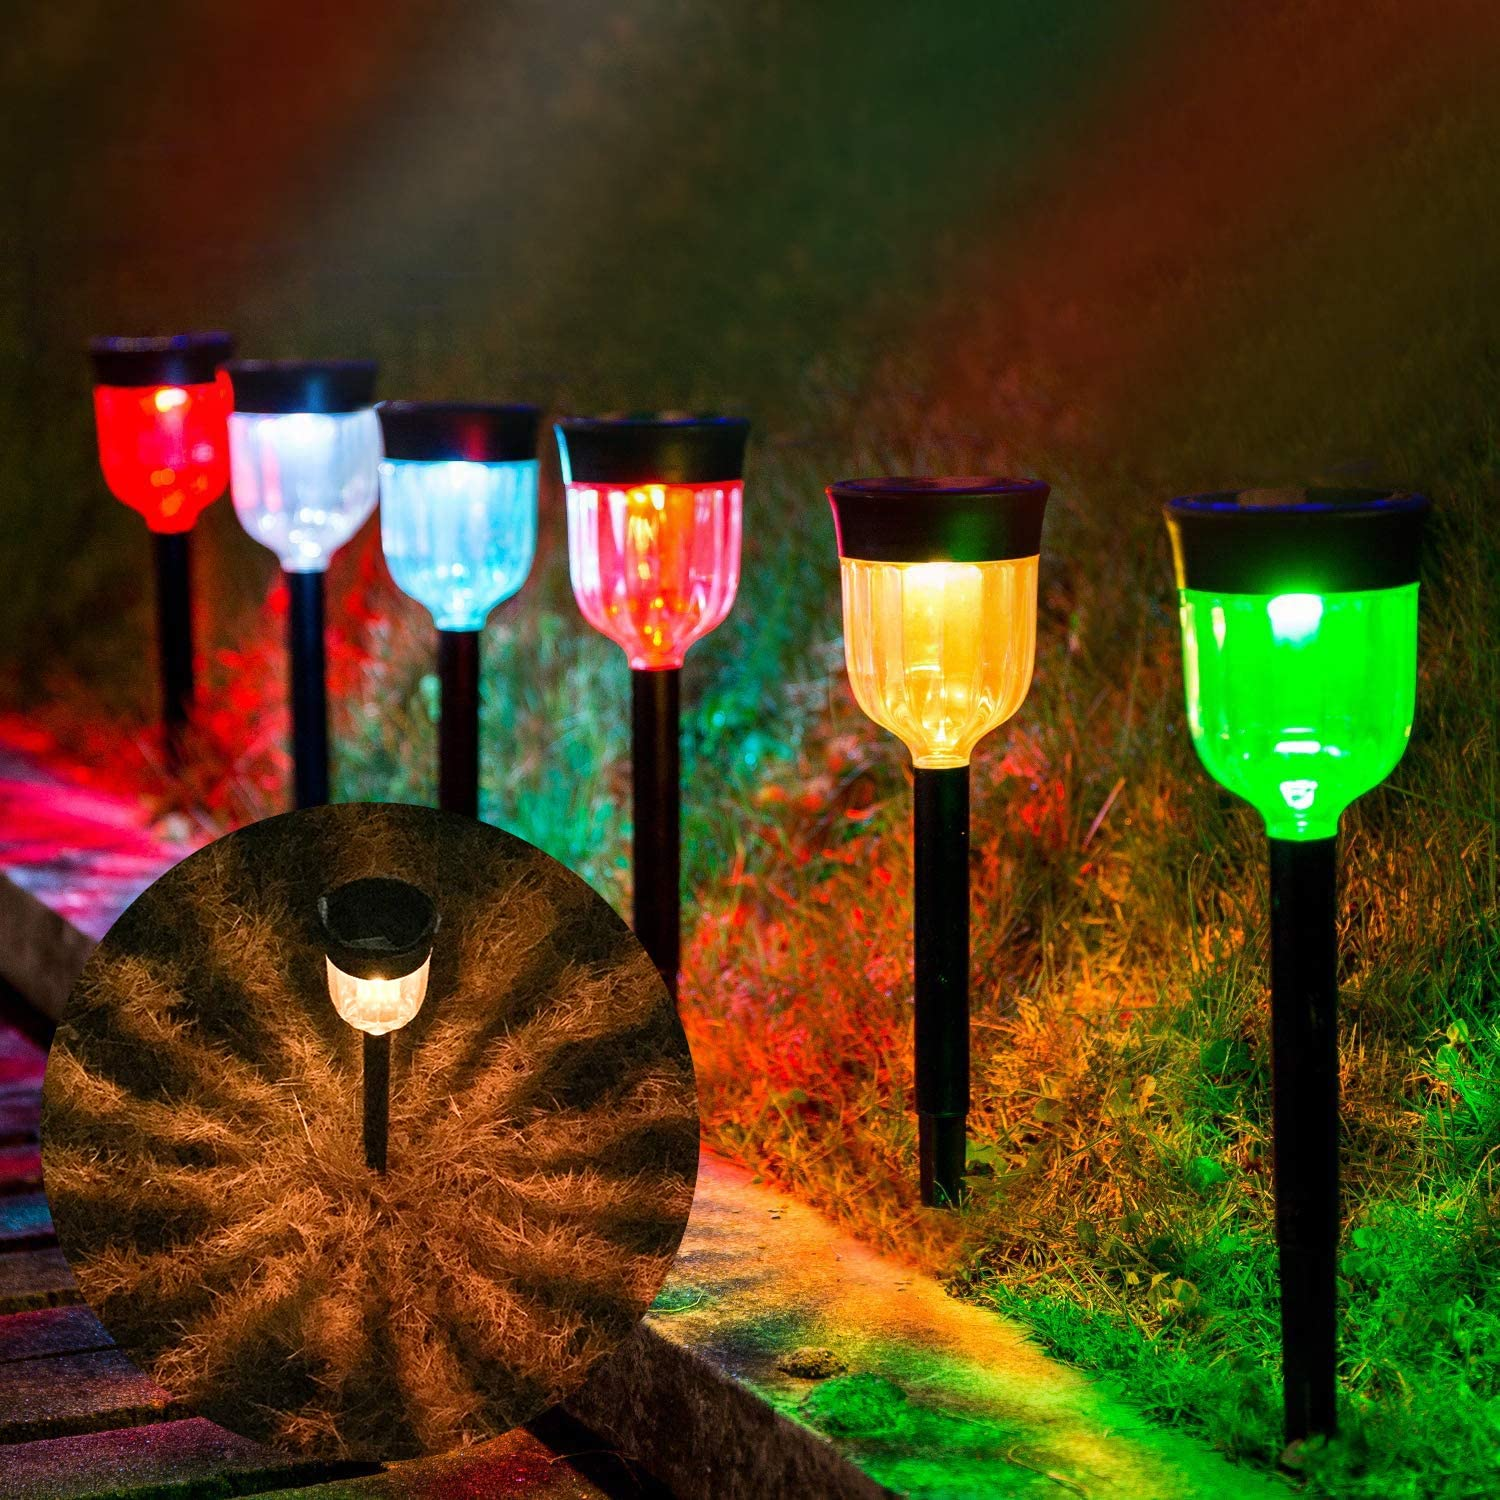 Solar Tucson Mall Detroit Mall Pathway Lights Outdoor 7 Decorative Colo with